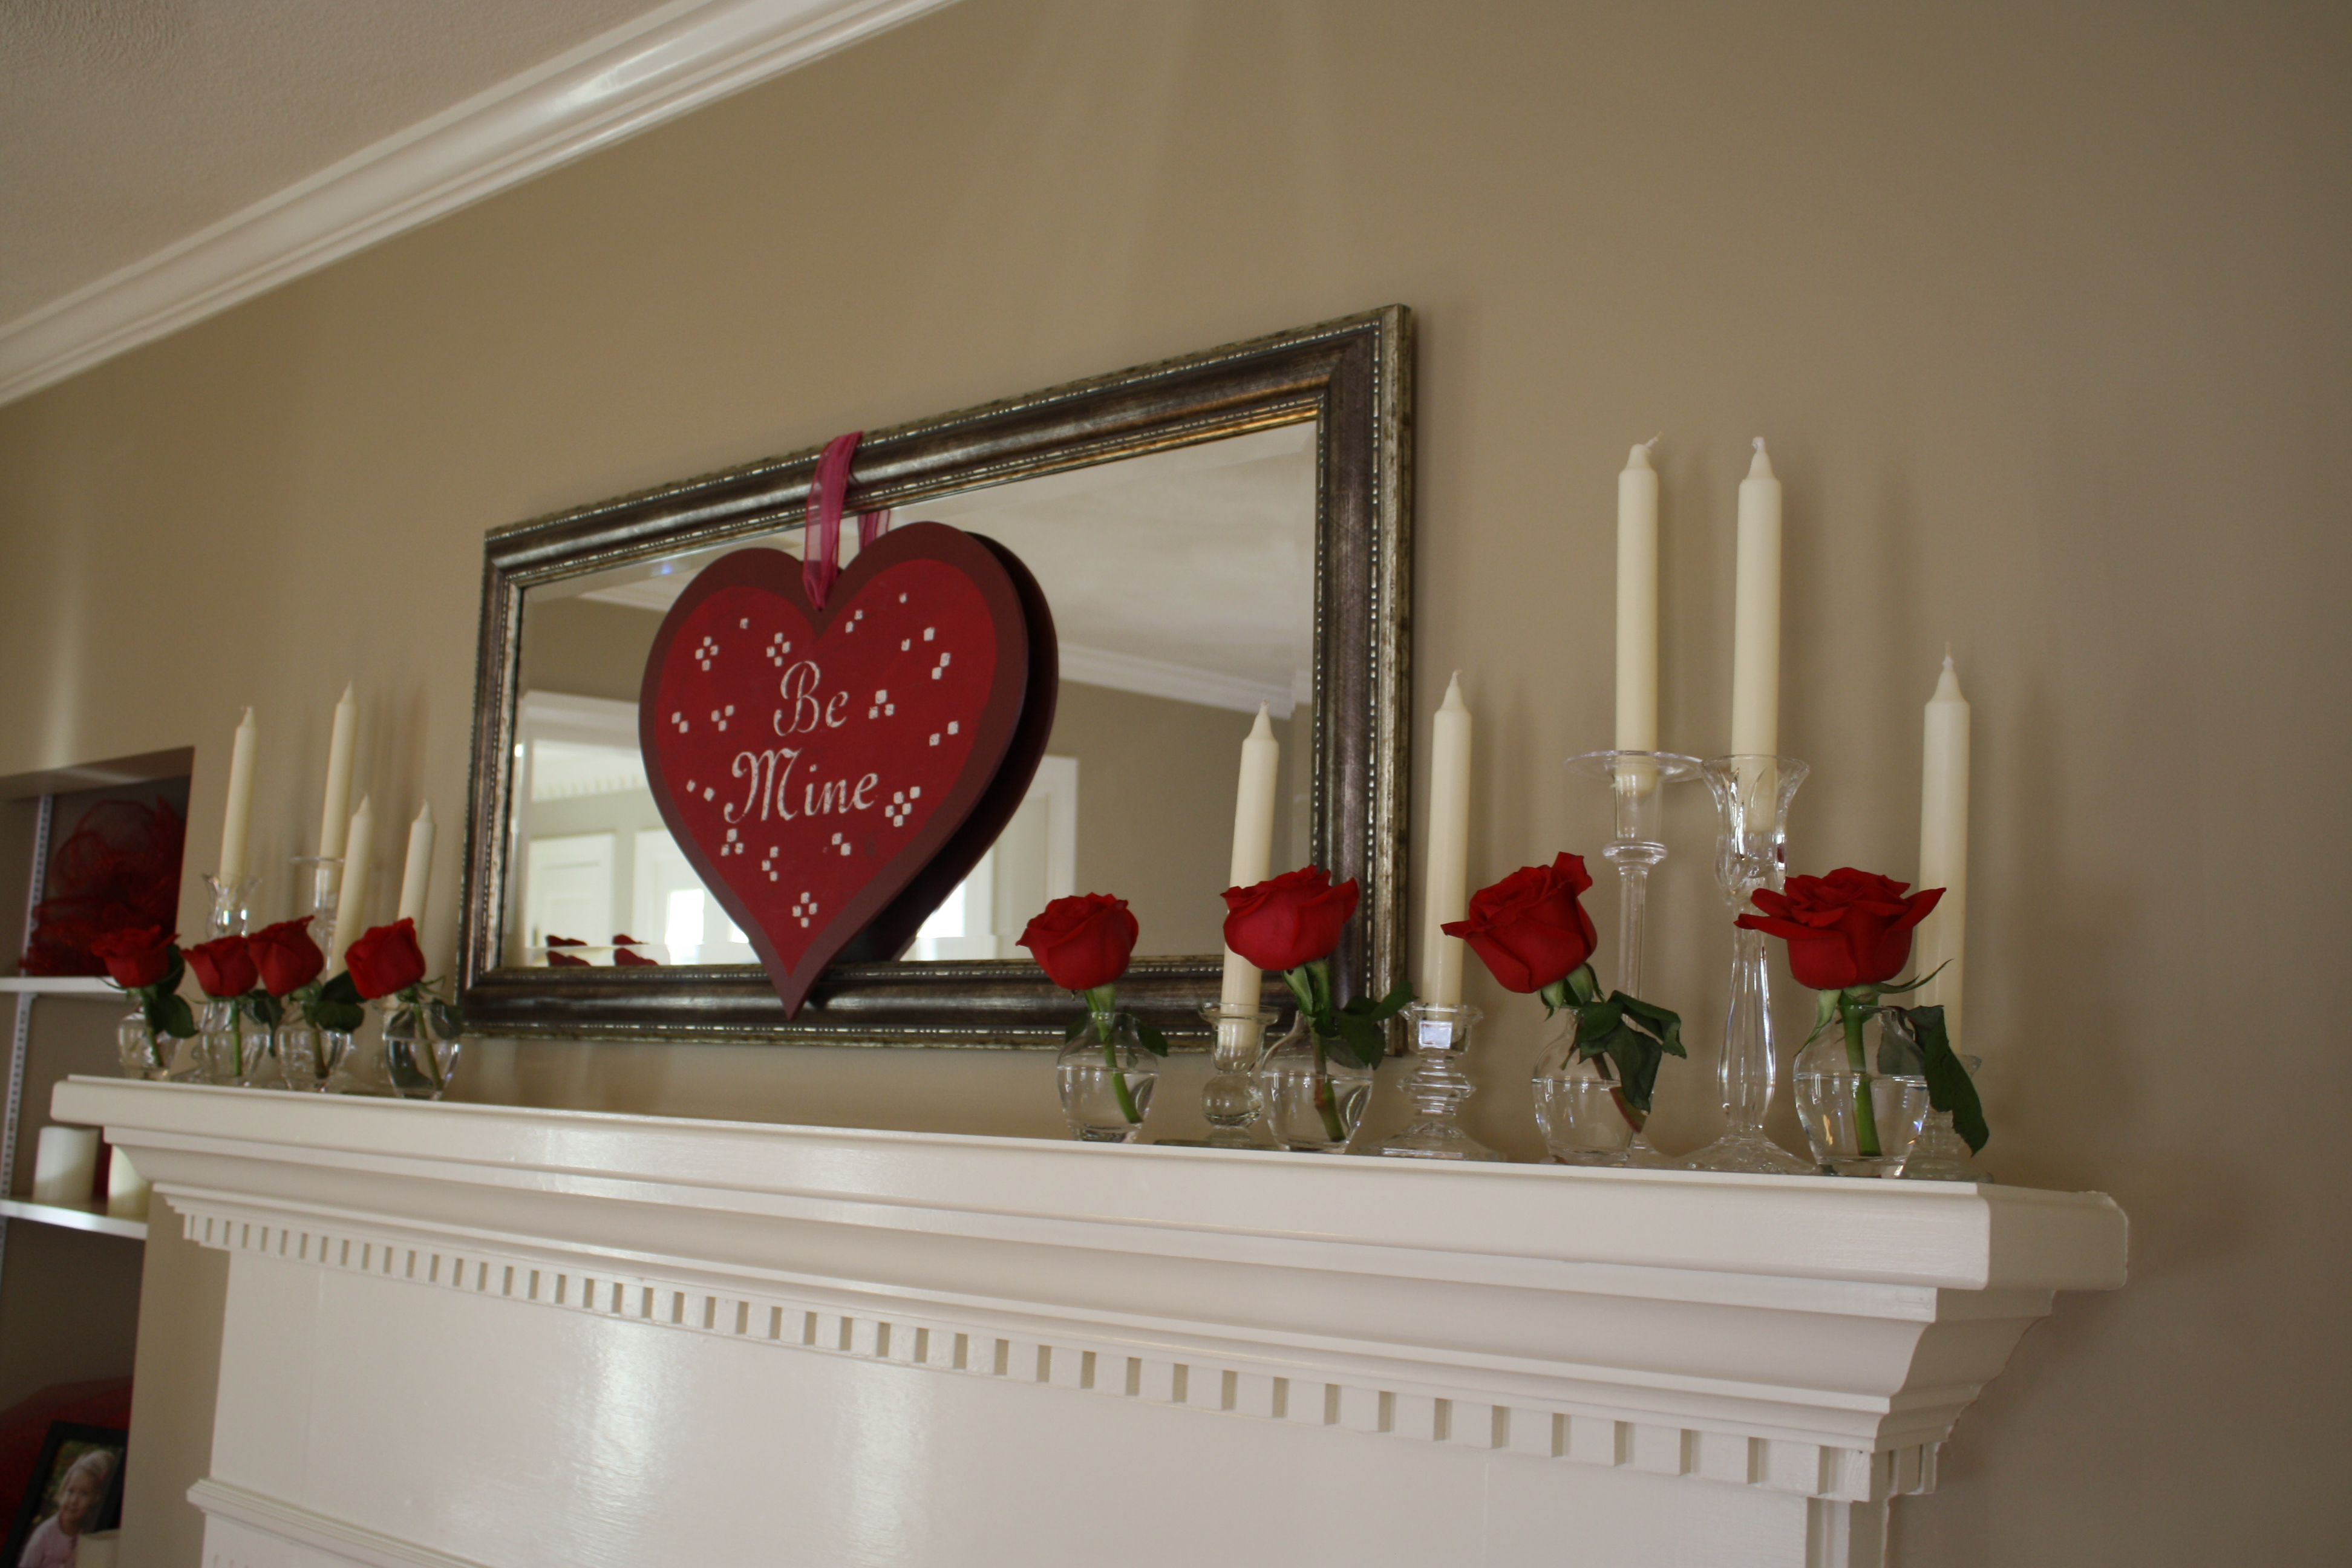 Bedroom decorating ideas for wedding night - In The Formal Living Room I Used Crystal Candle Sticks And Bud Vases For A Simple Elegant Design